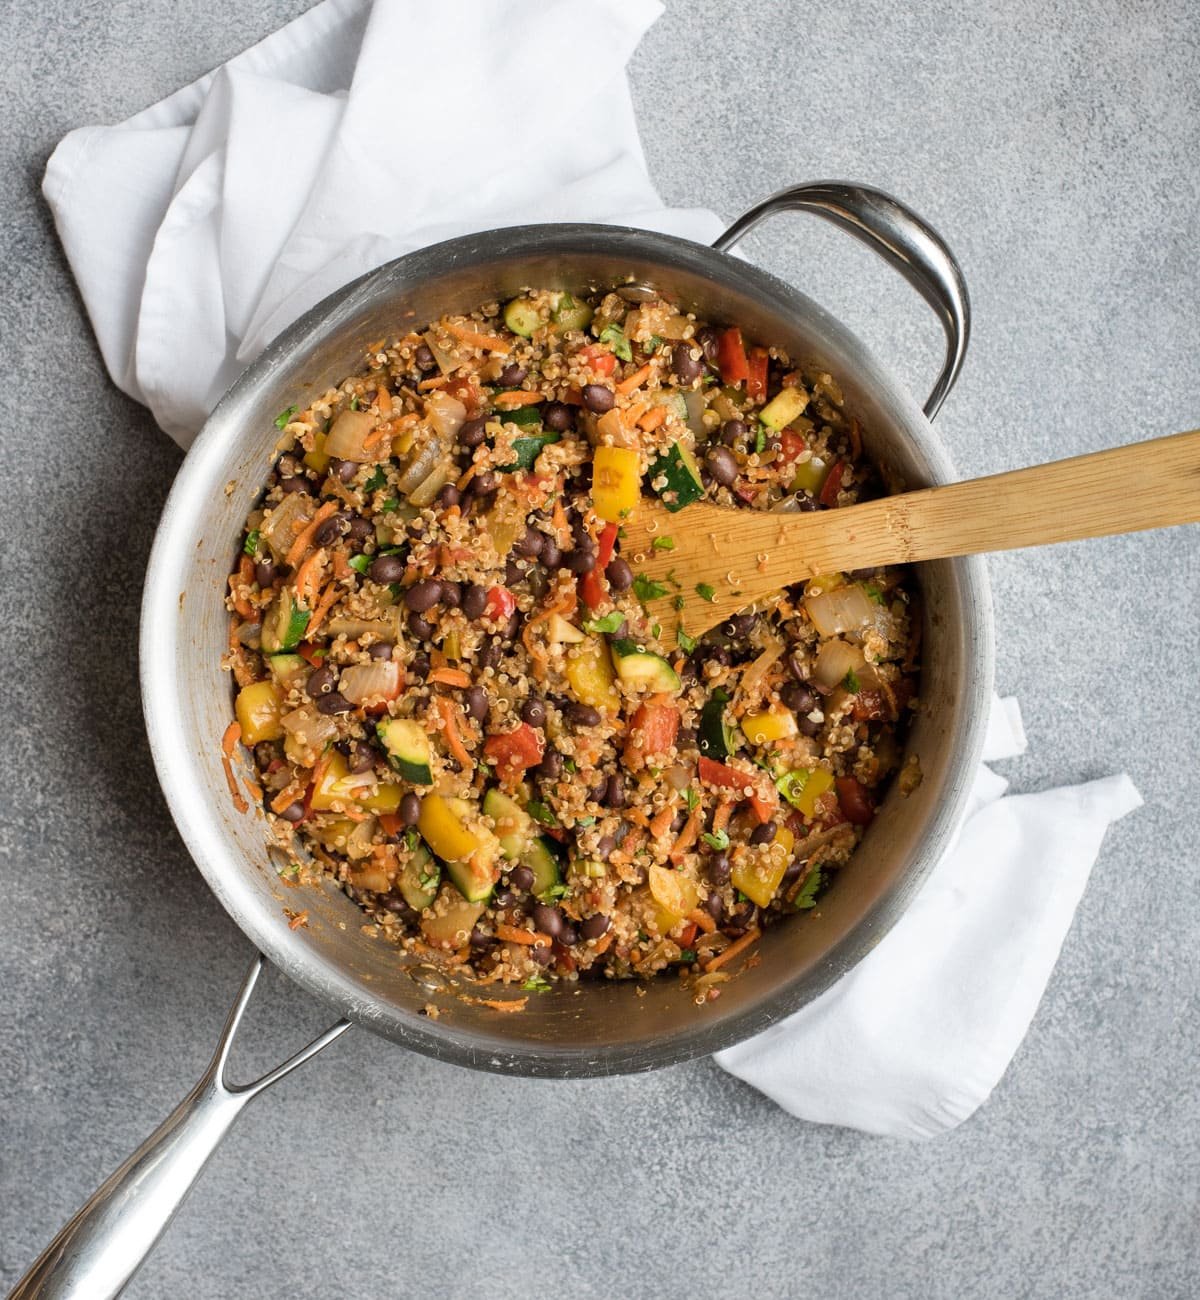 Black bean quinoa casserole process picture of quinoa and vegetables in a saute pan